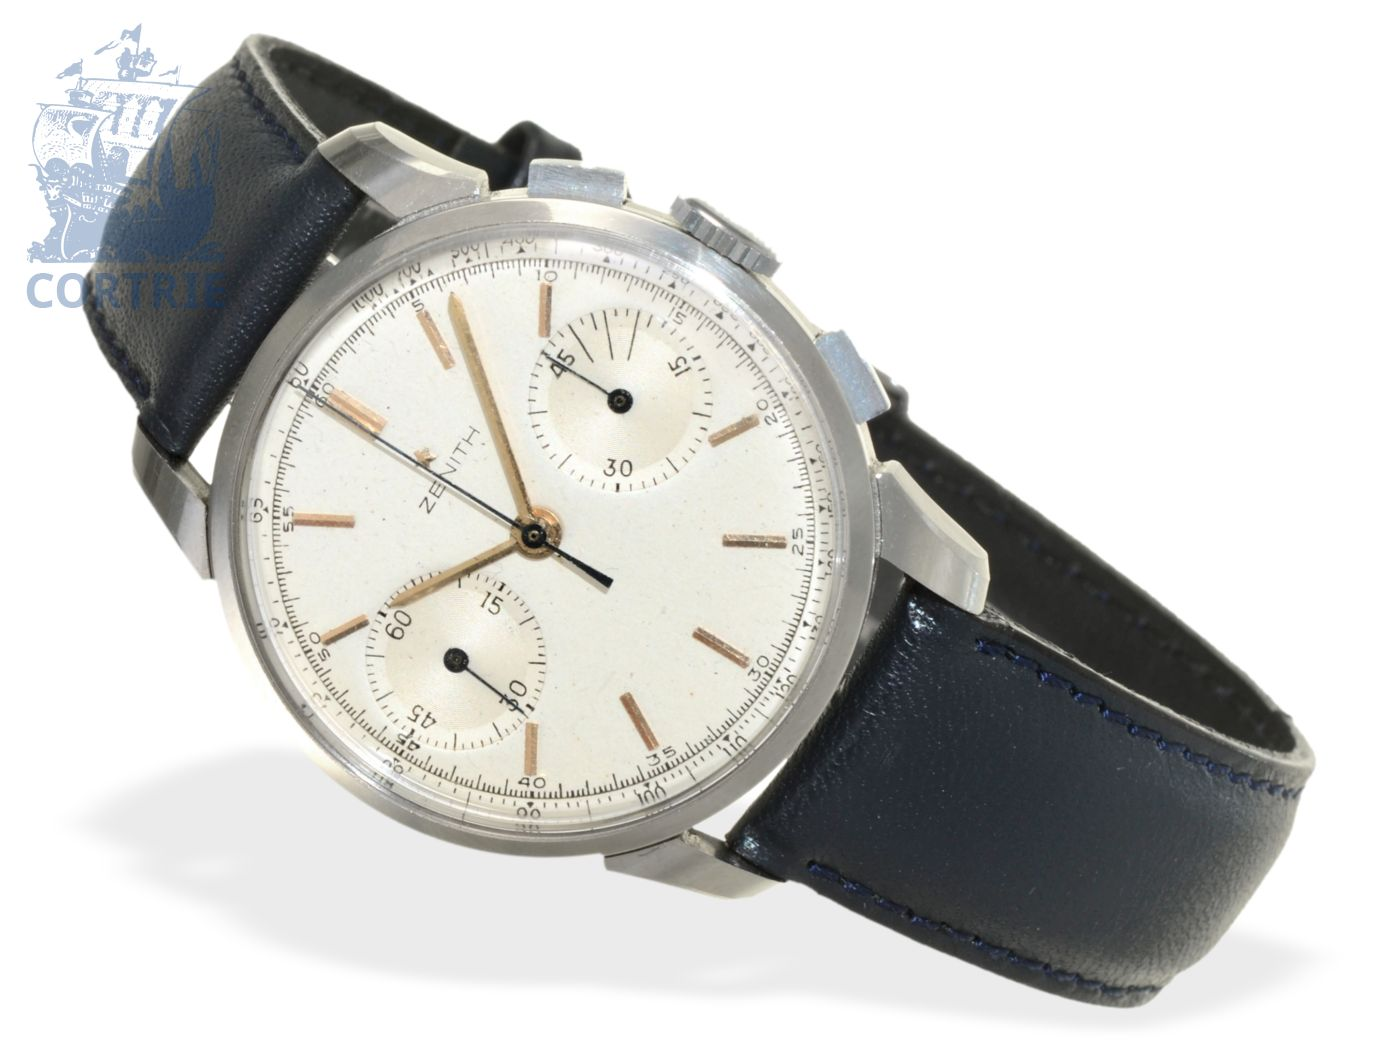 Wristwatch: big Zenith tachymeter chronograph, stainless steel, ca. 1960-